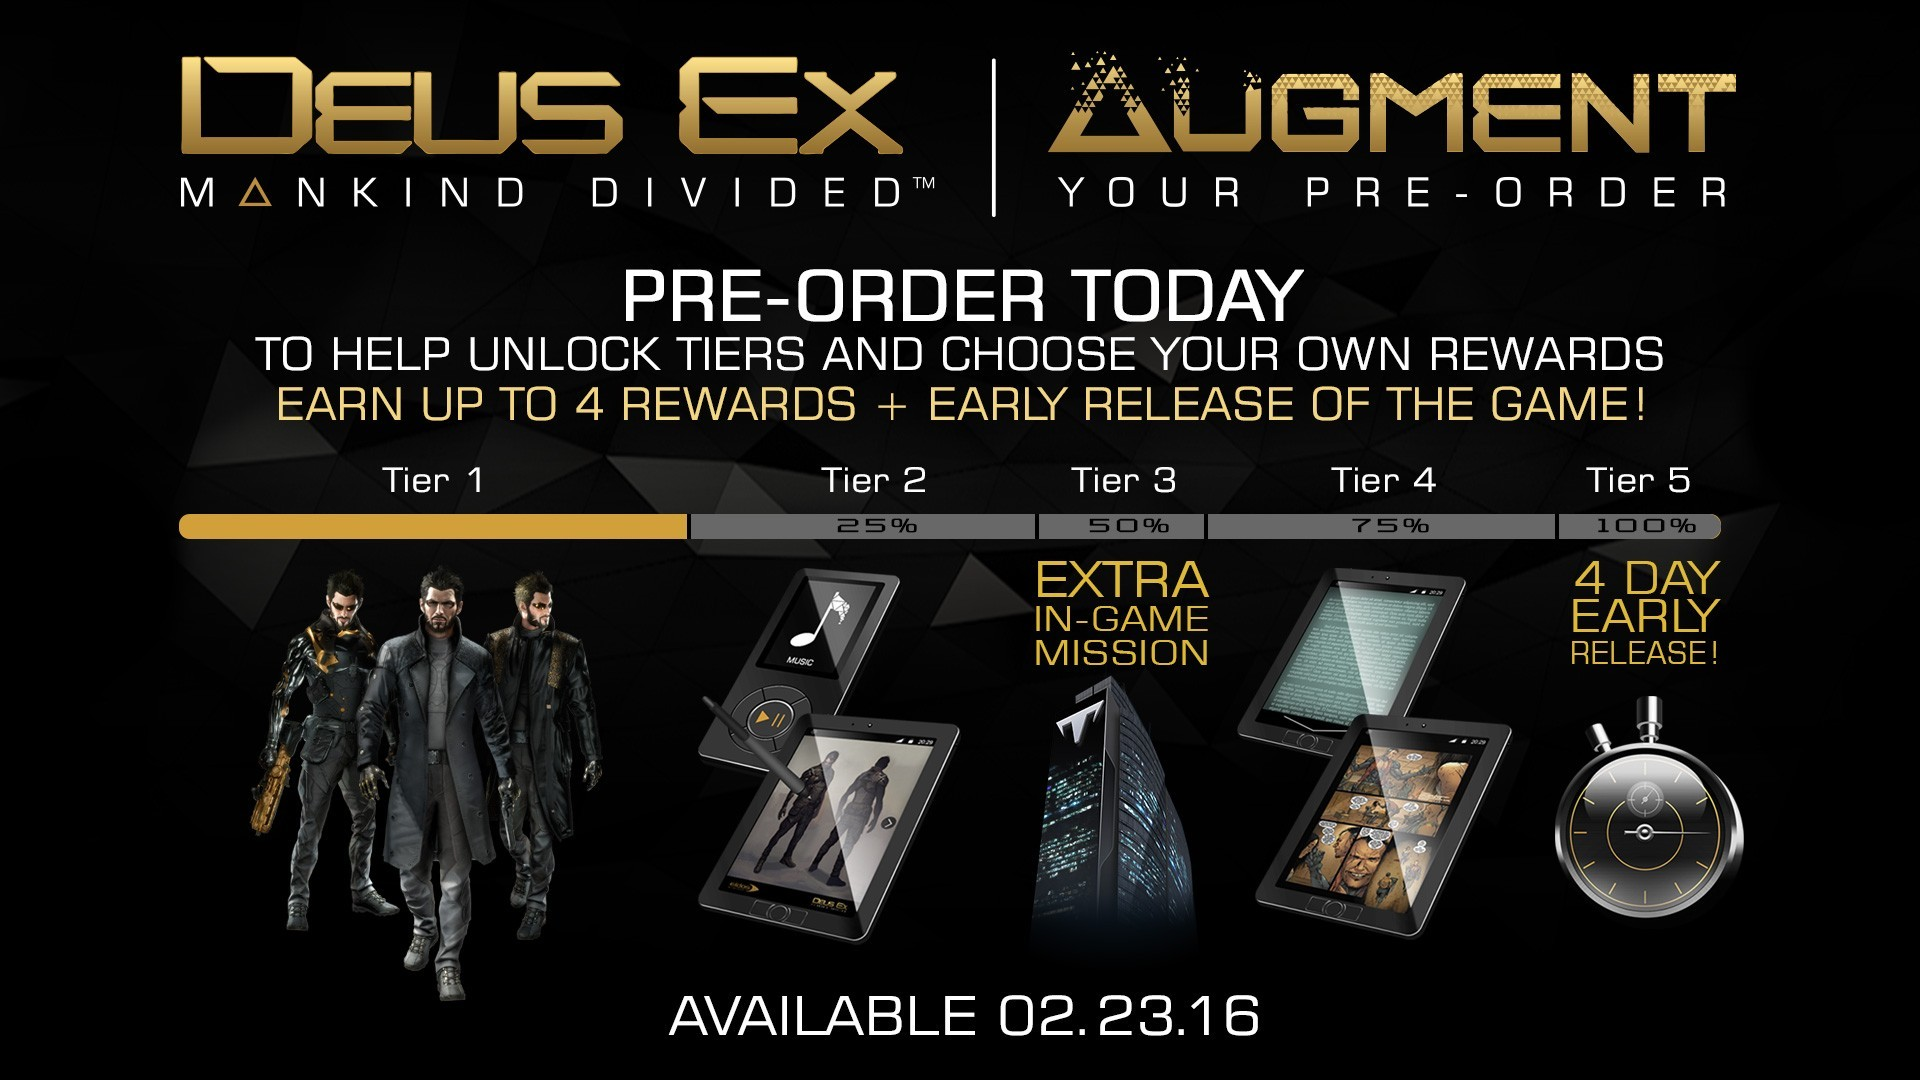 Mankind Divided's preorder system, something you'd see on the PS5